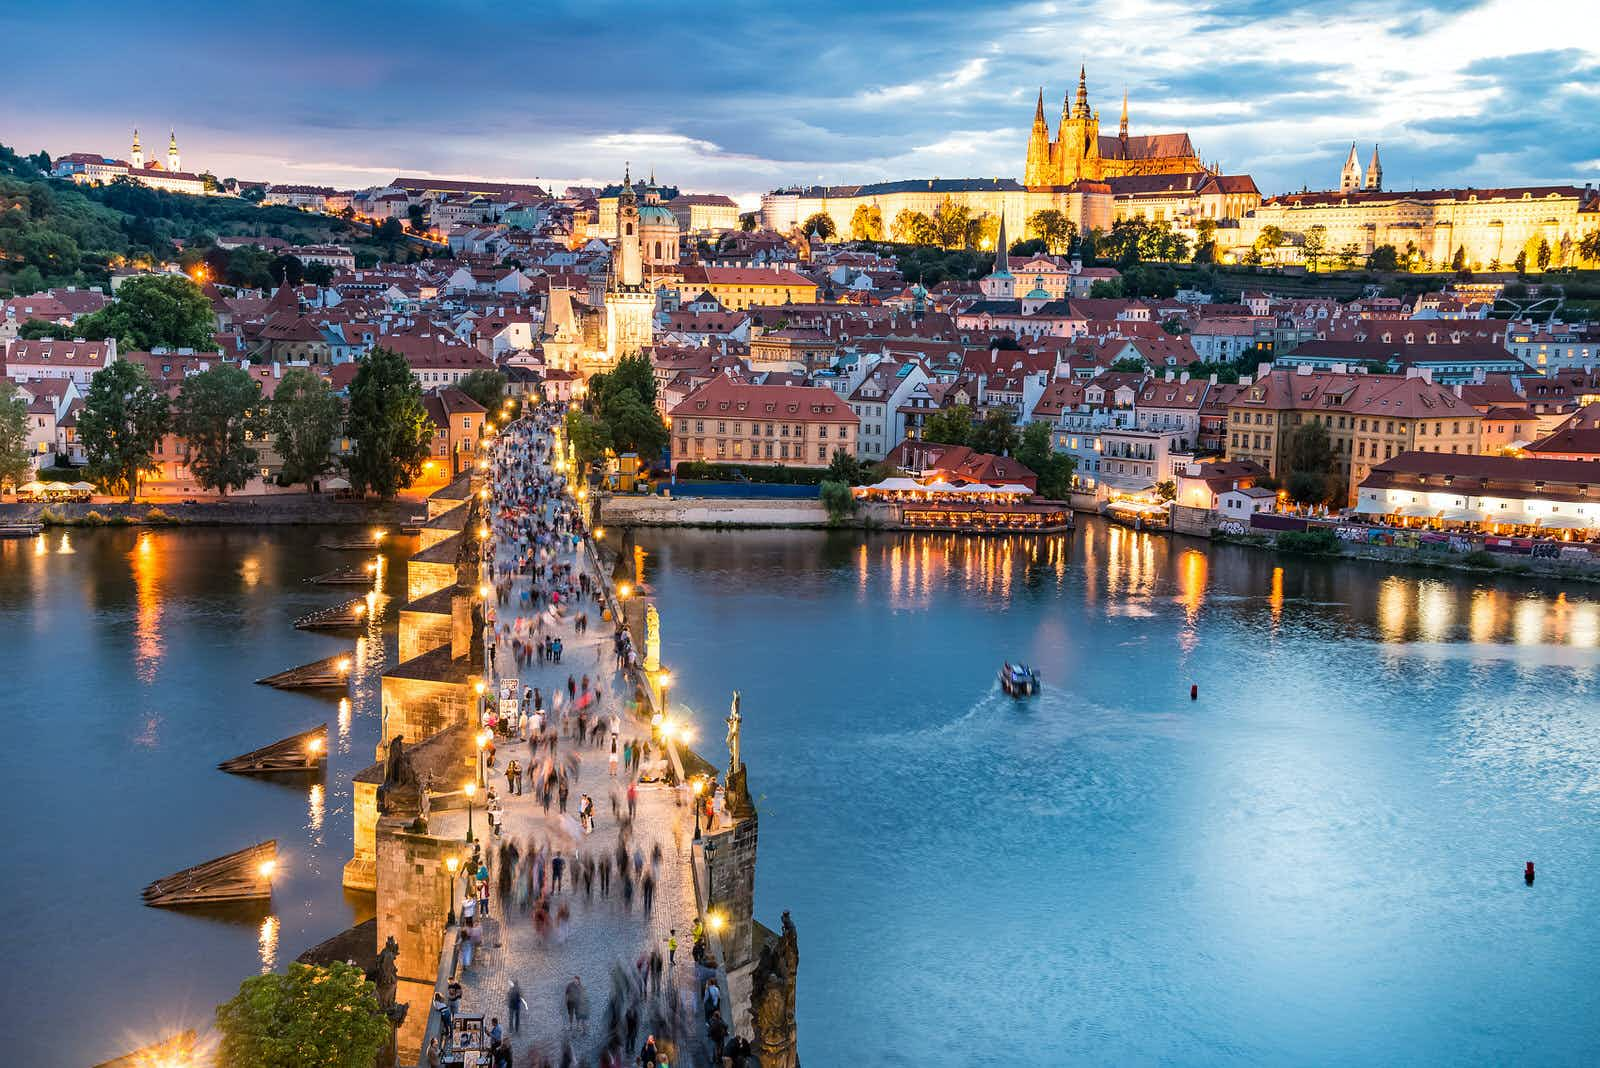 Prague Castle looms above the Vltava's left bank and Charles Bridge © NaughtyNut / Shutterstock